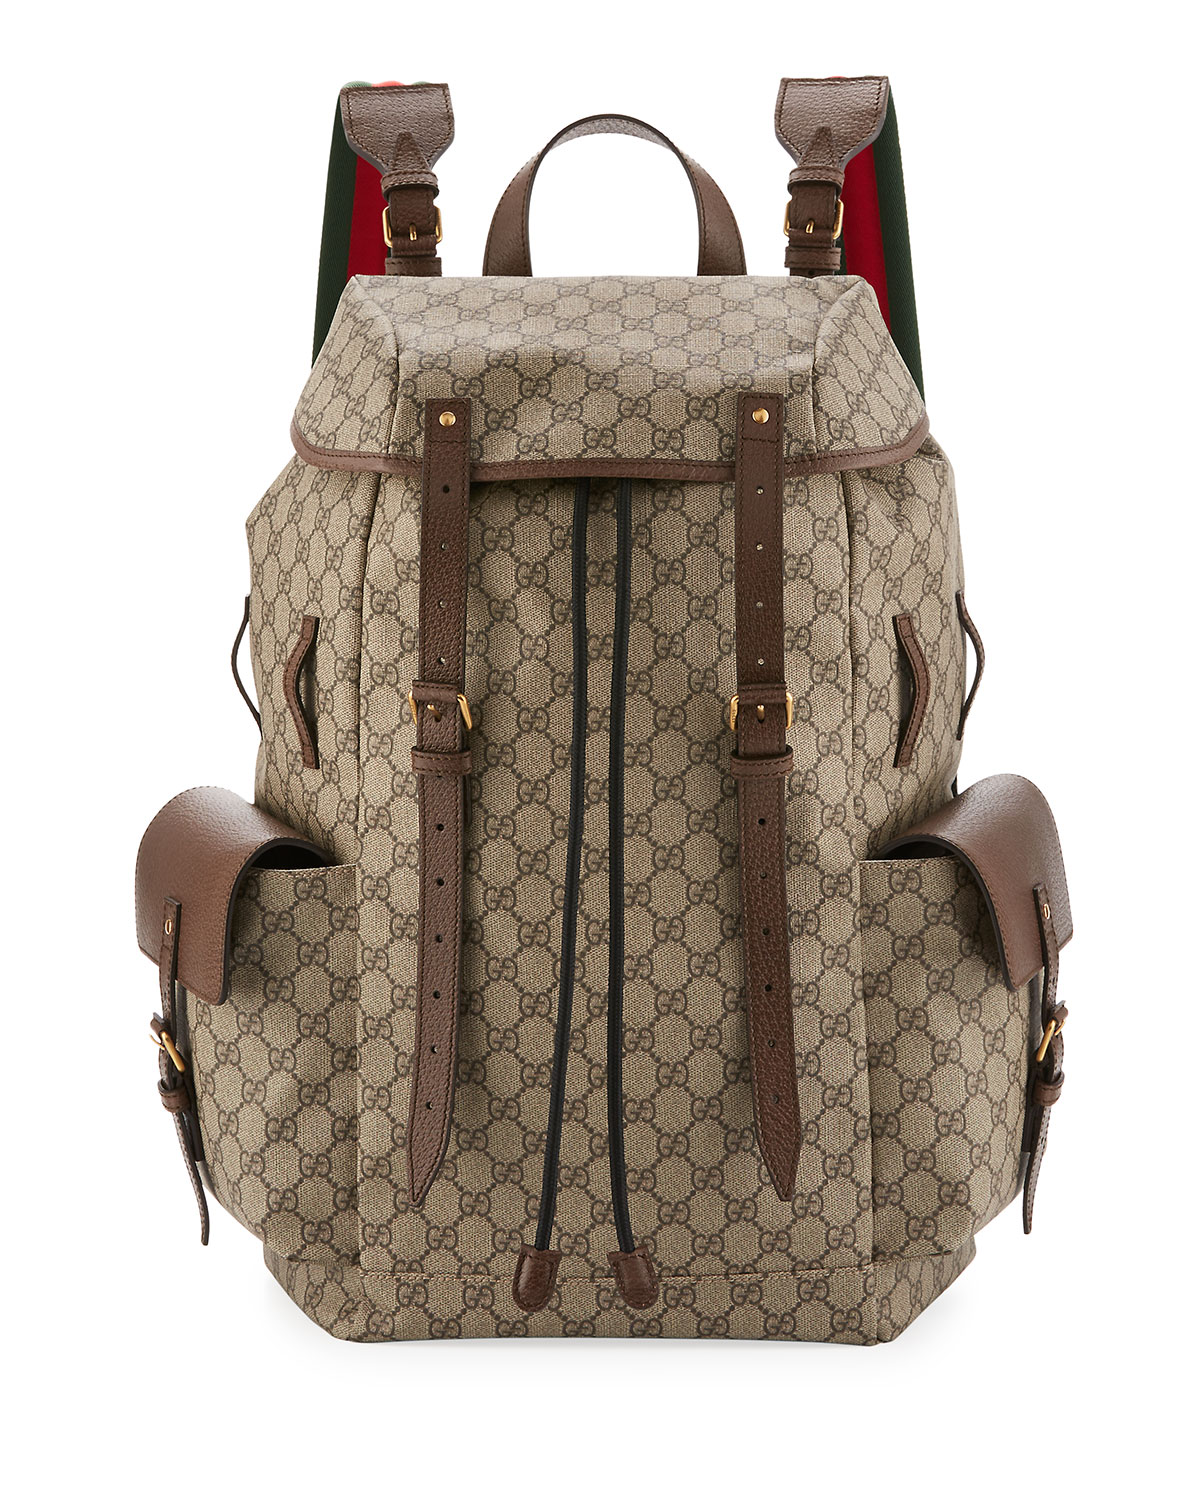 227380a0b15 Gucci Soft GG Supreme Men s Backpack with Web Straps